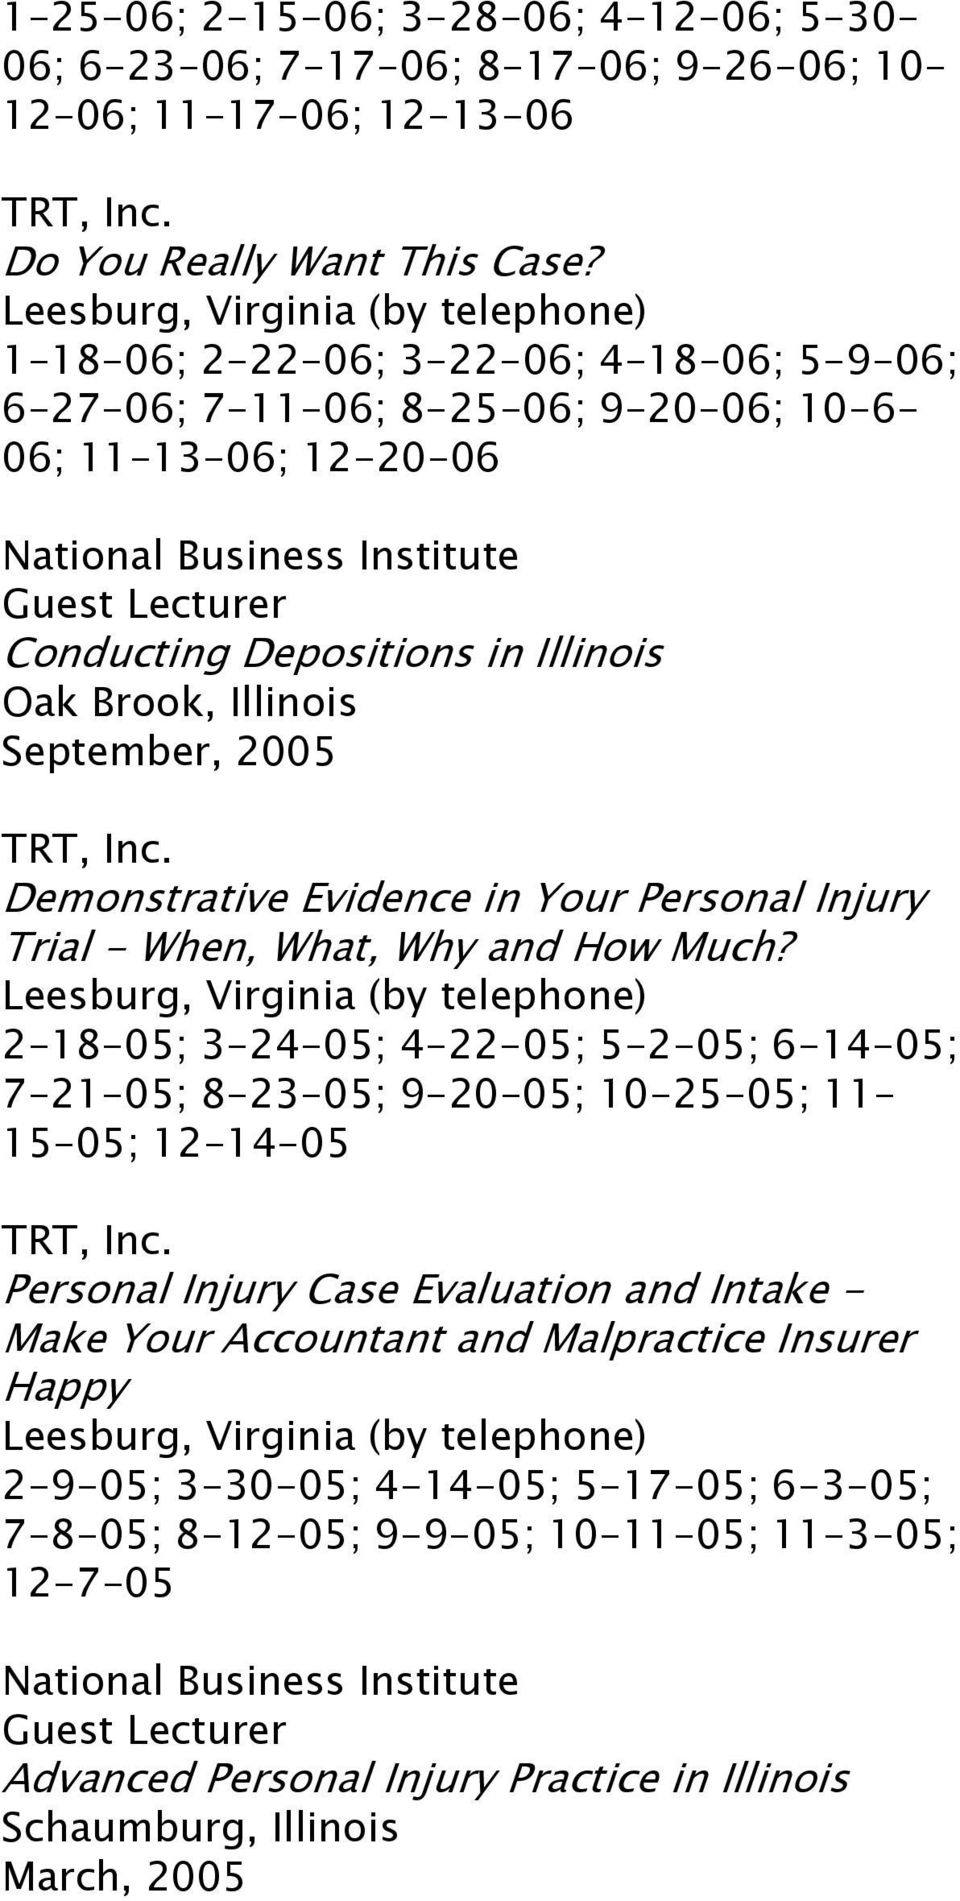 Illinois Oak Brook, Illinois September, 2005 TRT, Inc. Demonstrative Evidence in Your Personal Injury Trial - When, What, Why and How Much?